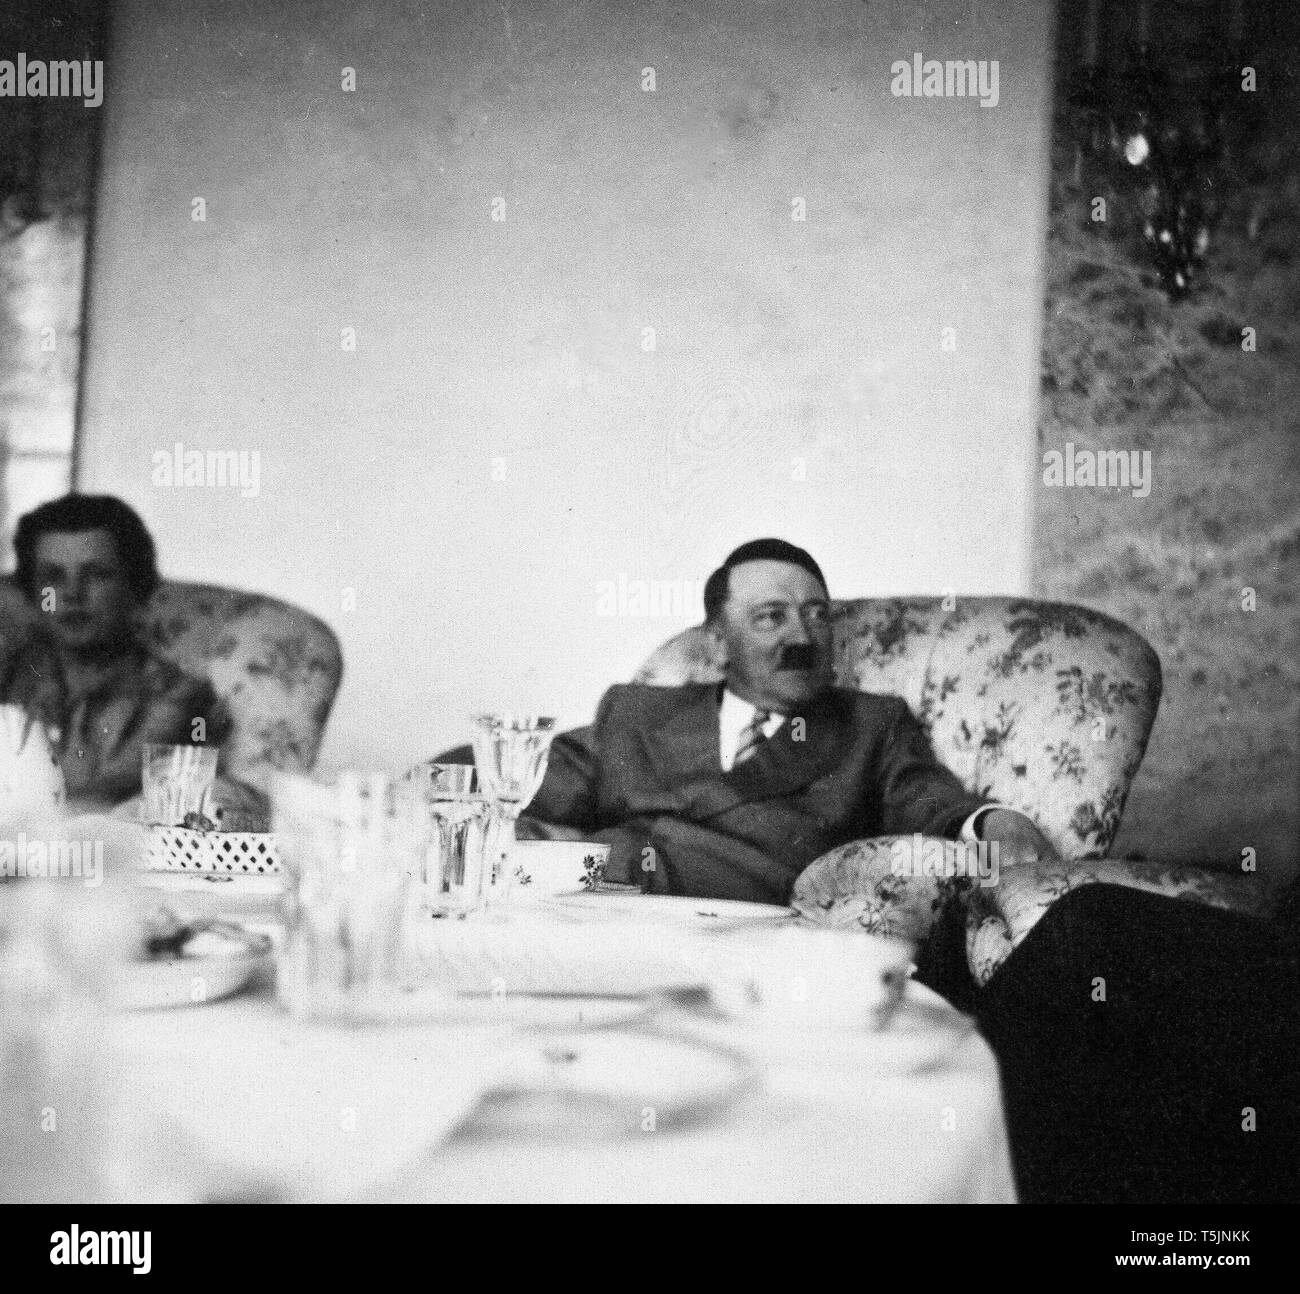 Eva Braun Collection (sest) - Candid photograph of Adolf Hilter ca. late 1930s or early 1940s) - Stock Image